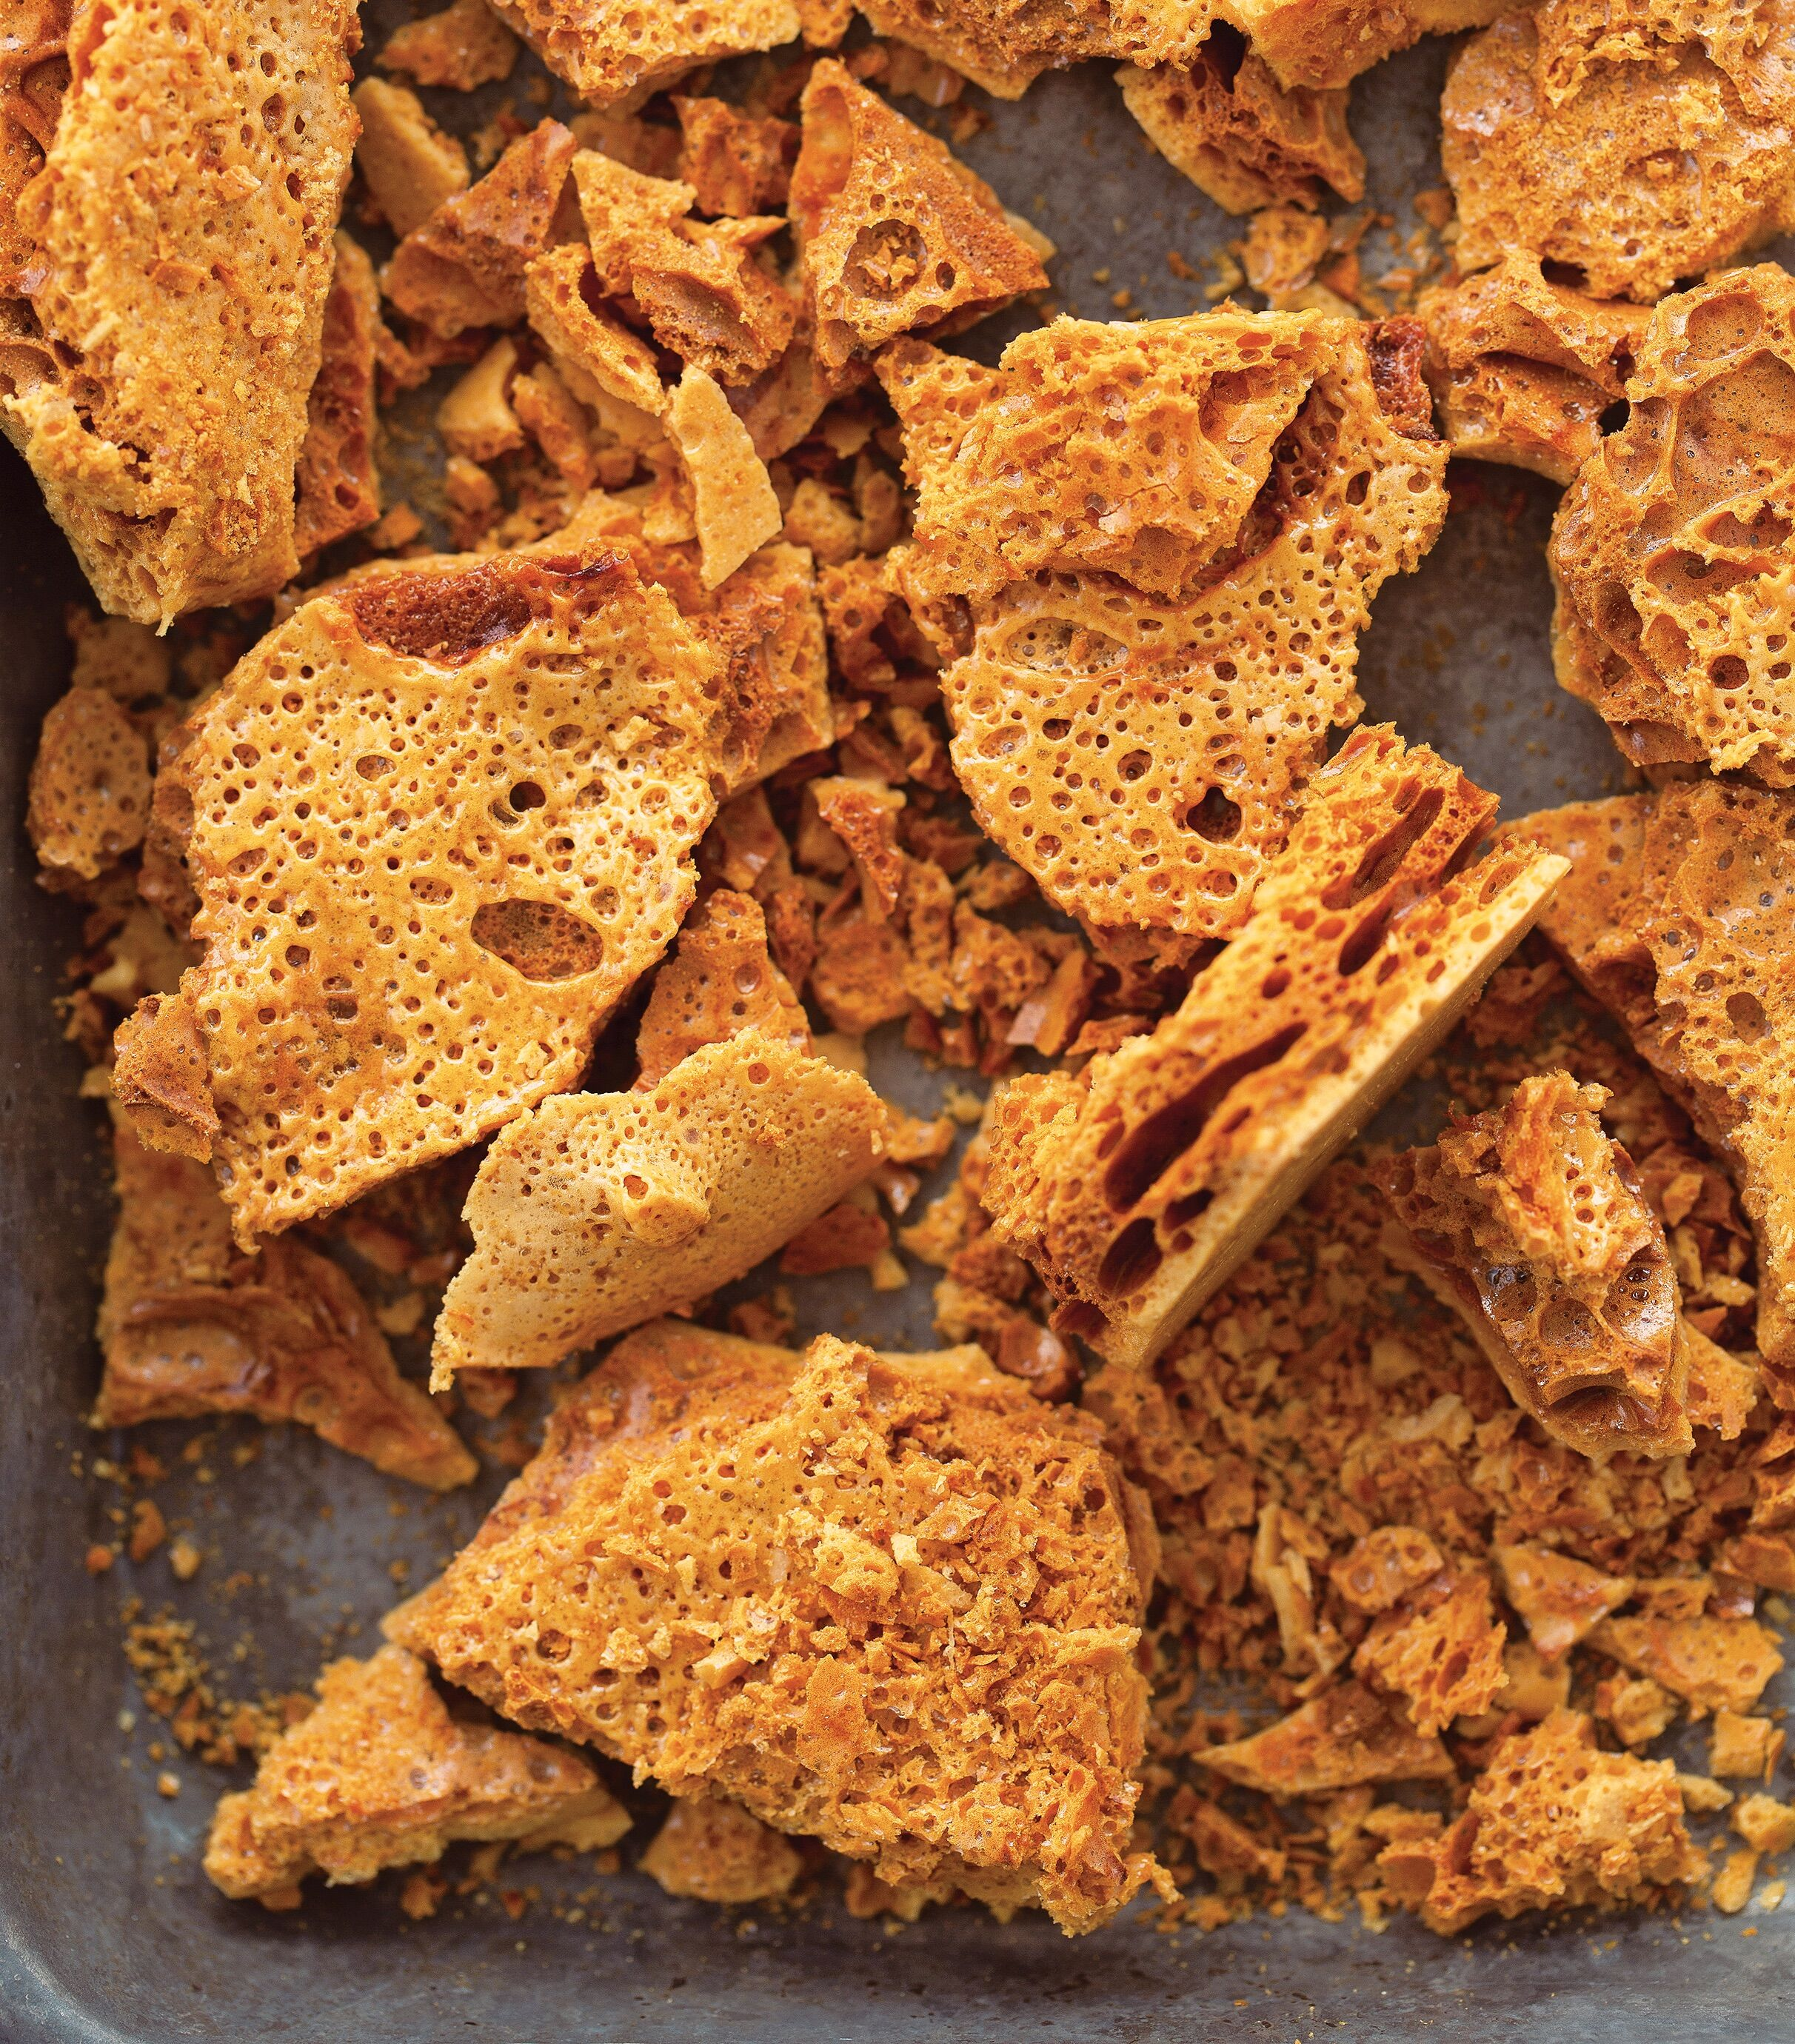 vegan salted honeycomb candy dessert